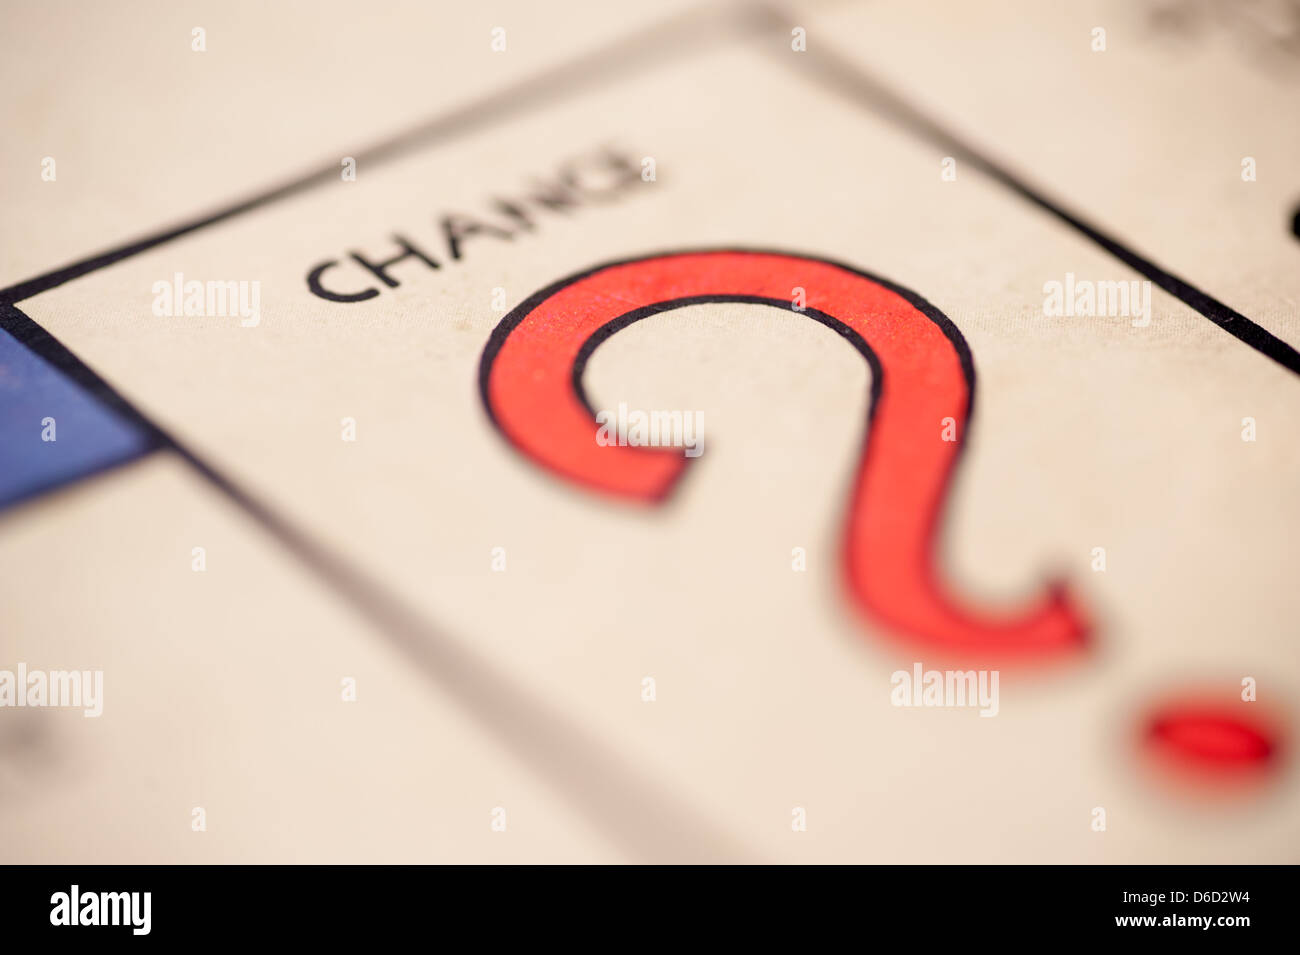 A question mark picture of the board game Monopoly landing on chance. - Stock Image